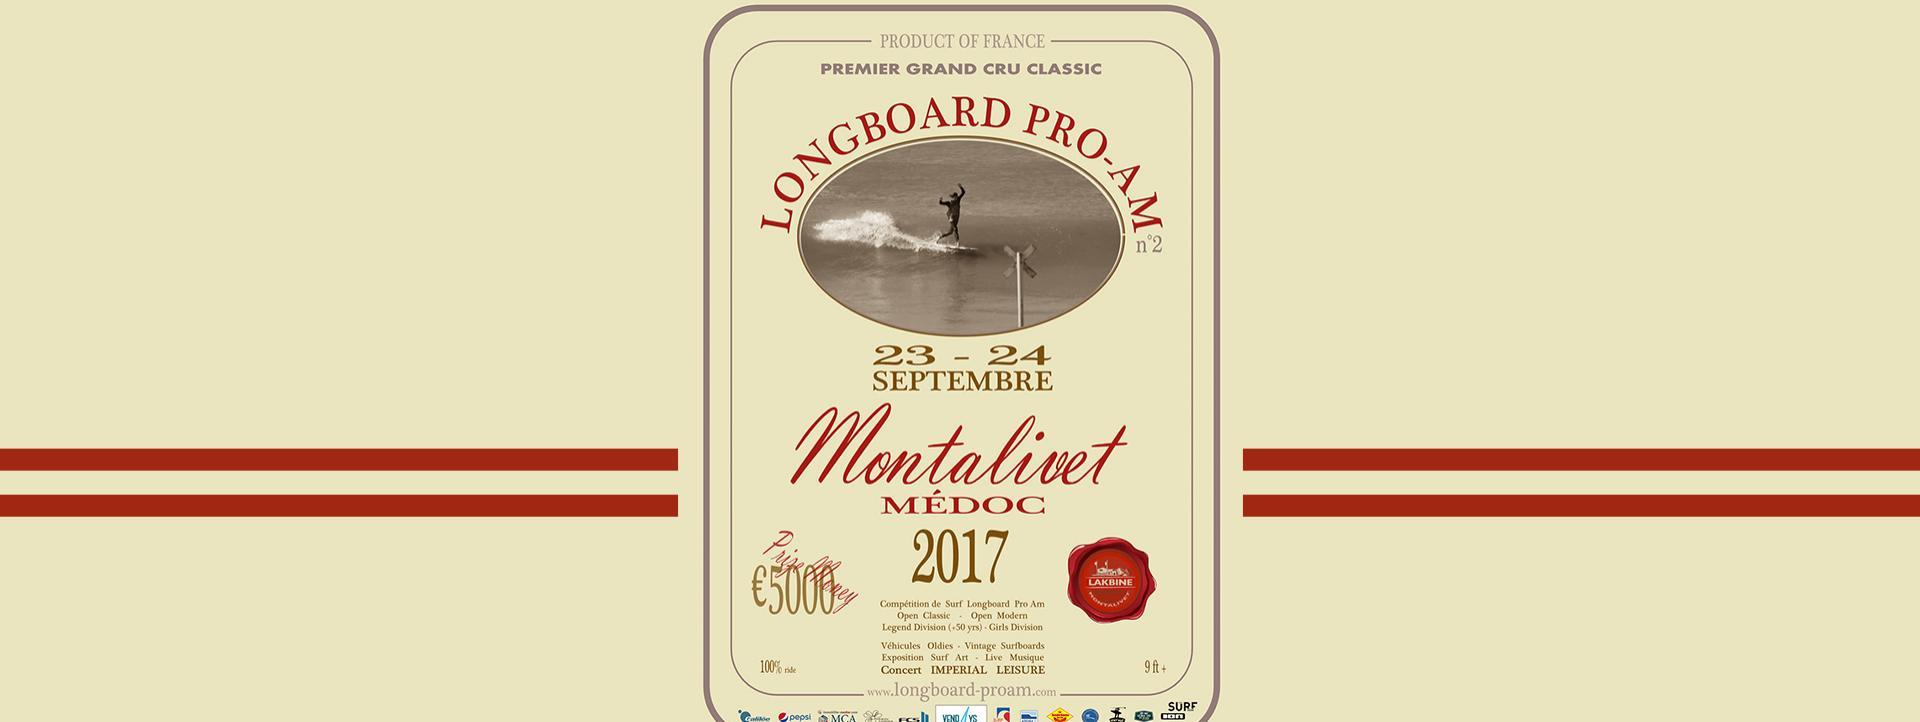 News Surf Montalivet Longboard PRO-AM 2017 : 23 et 24 septembre